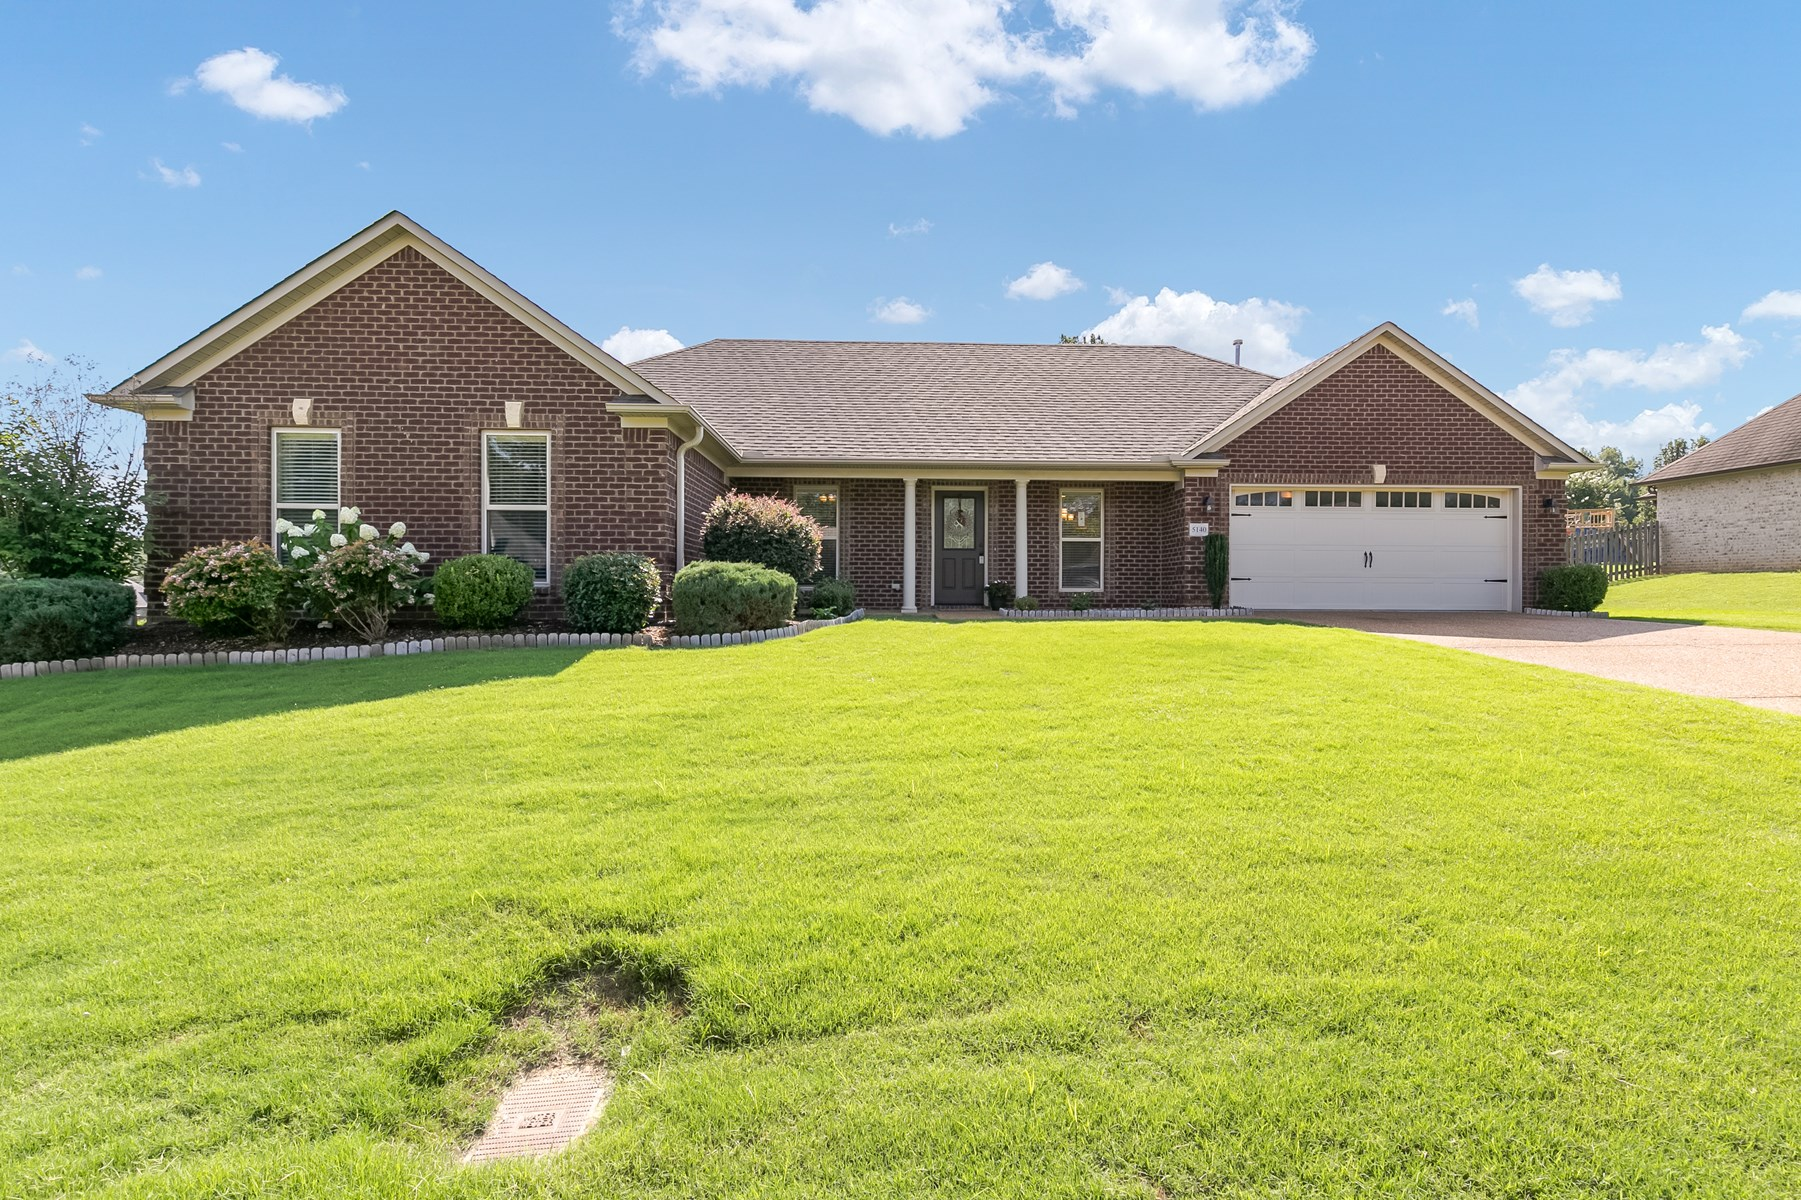 4 Bedroom 2 Bath Home in Milan, TN